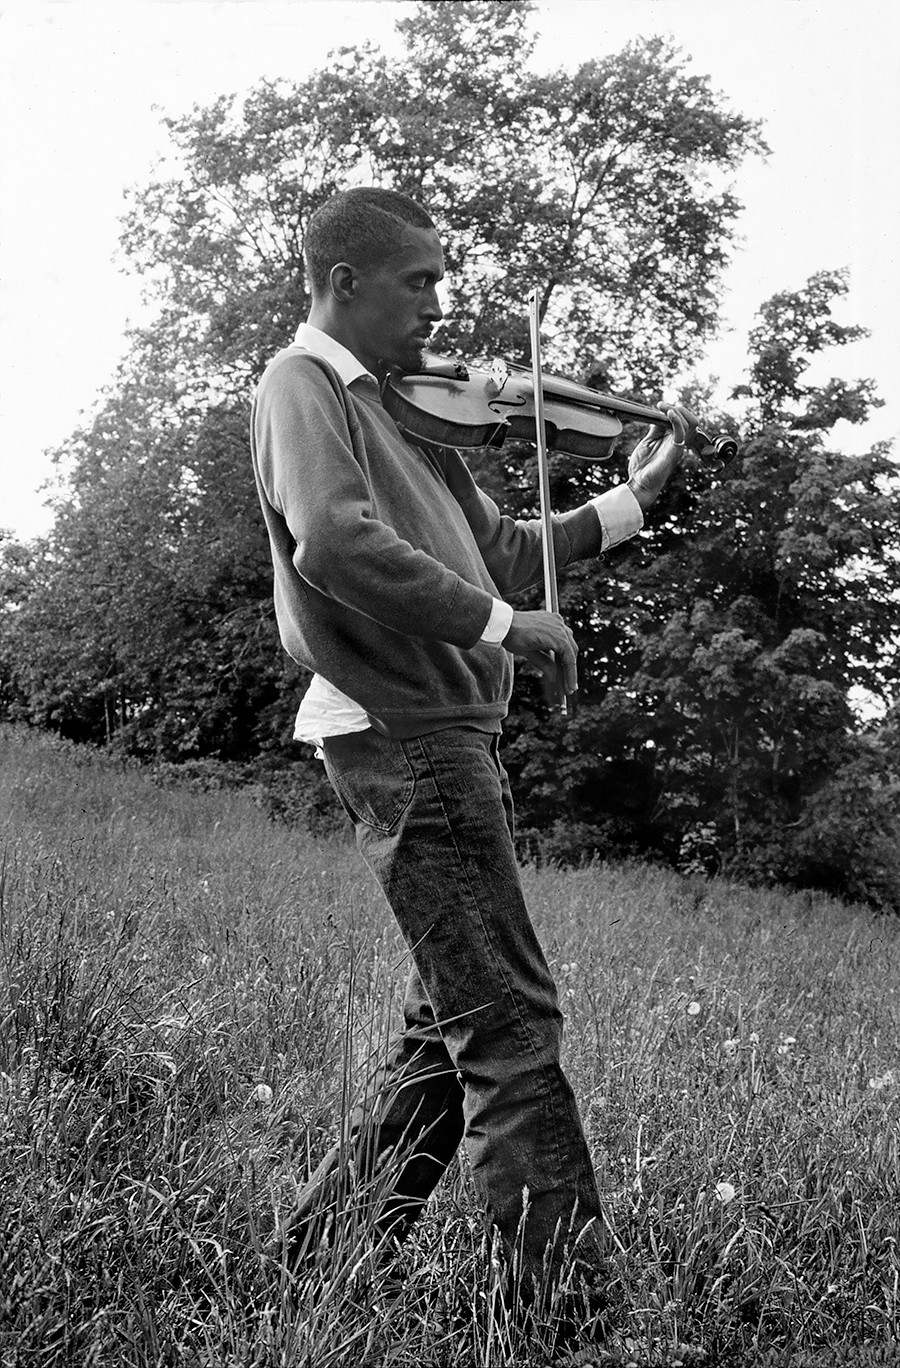 Julius Eastman plays the violin at Griffis Sculpture Park in East Otto, New York, during a 1975 rehearsal by theS.E.M.Ensemble. - CHRIS RUSINIAK